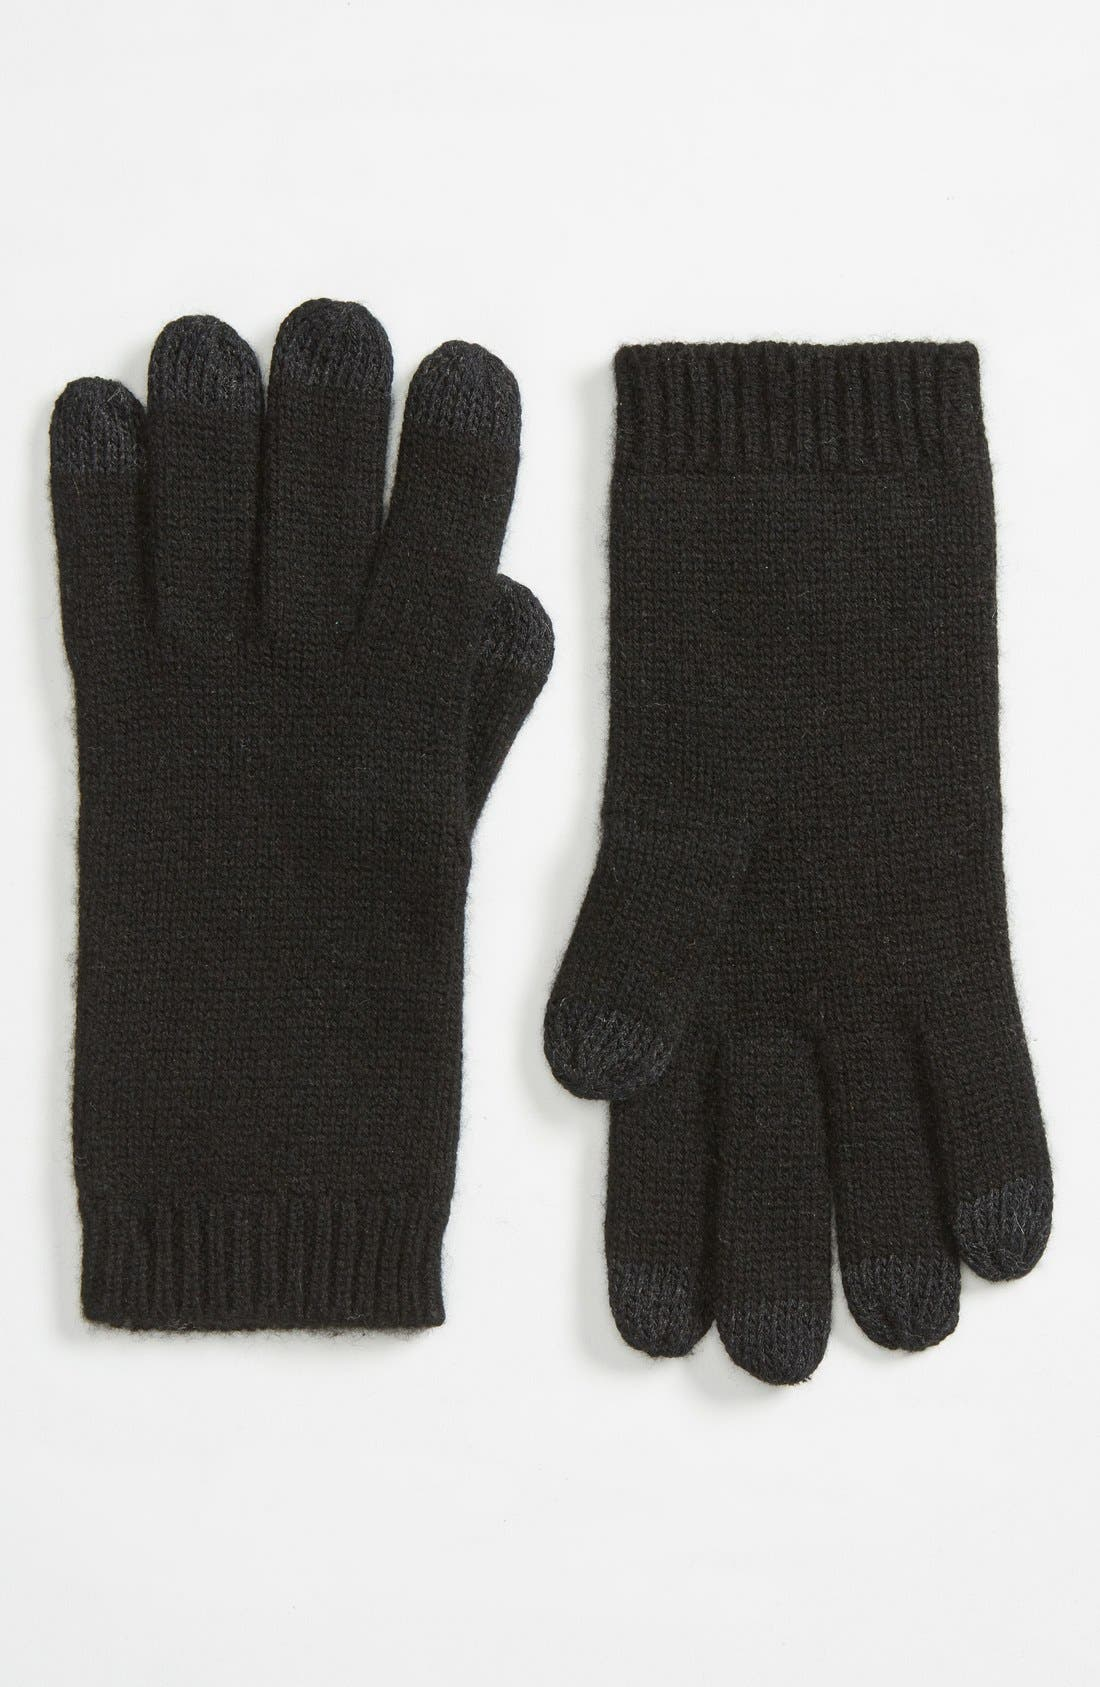 Alternate Image 1 Selected - UGG® 'Luxe Smart' Tech Gloves